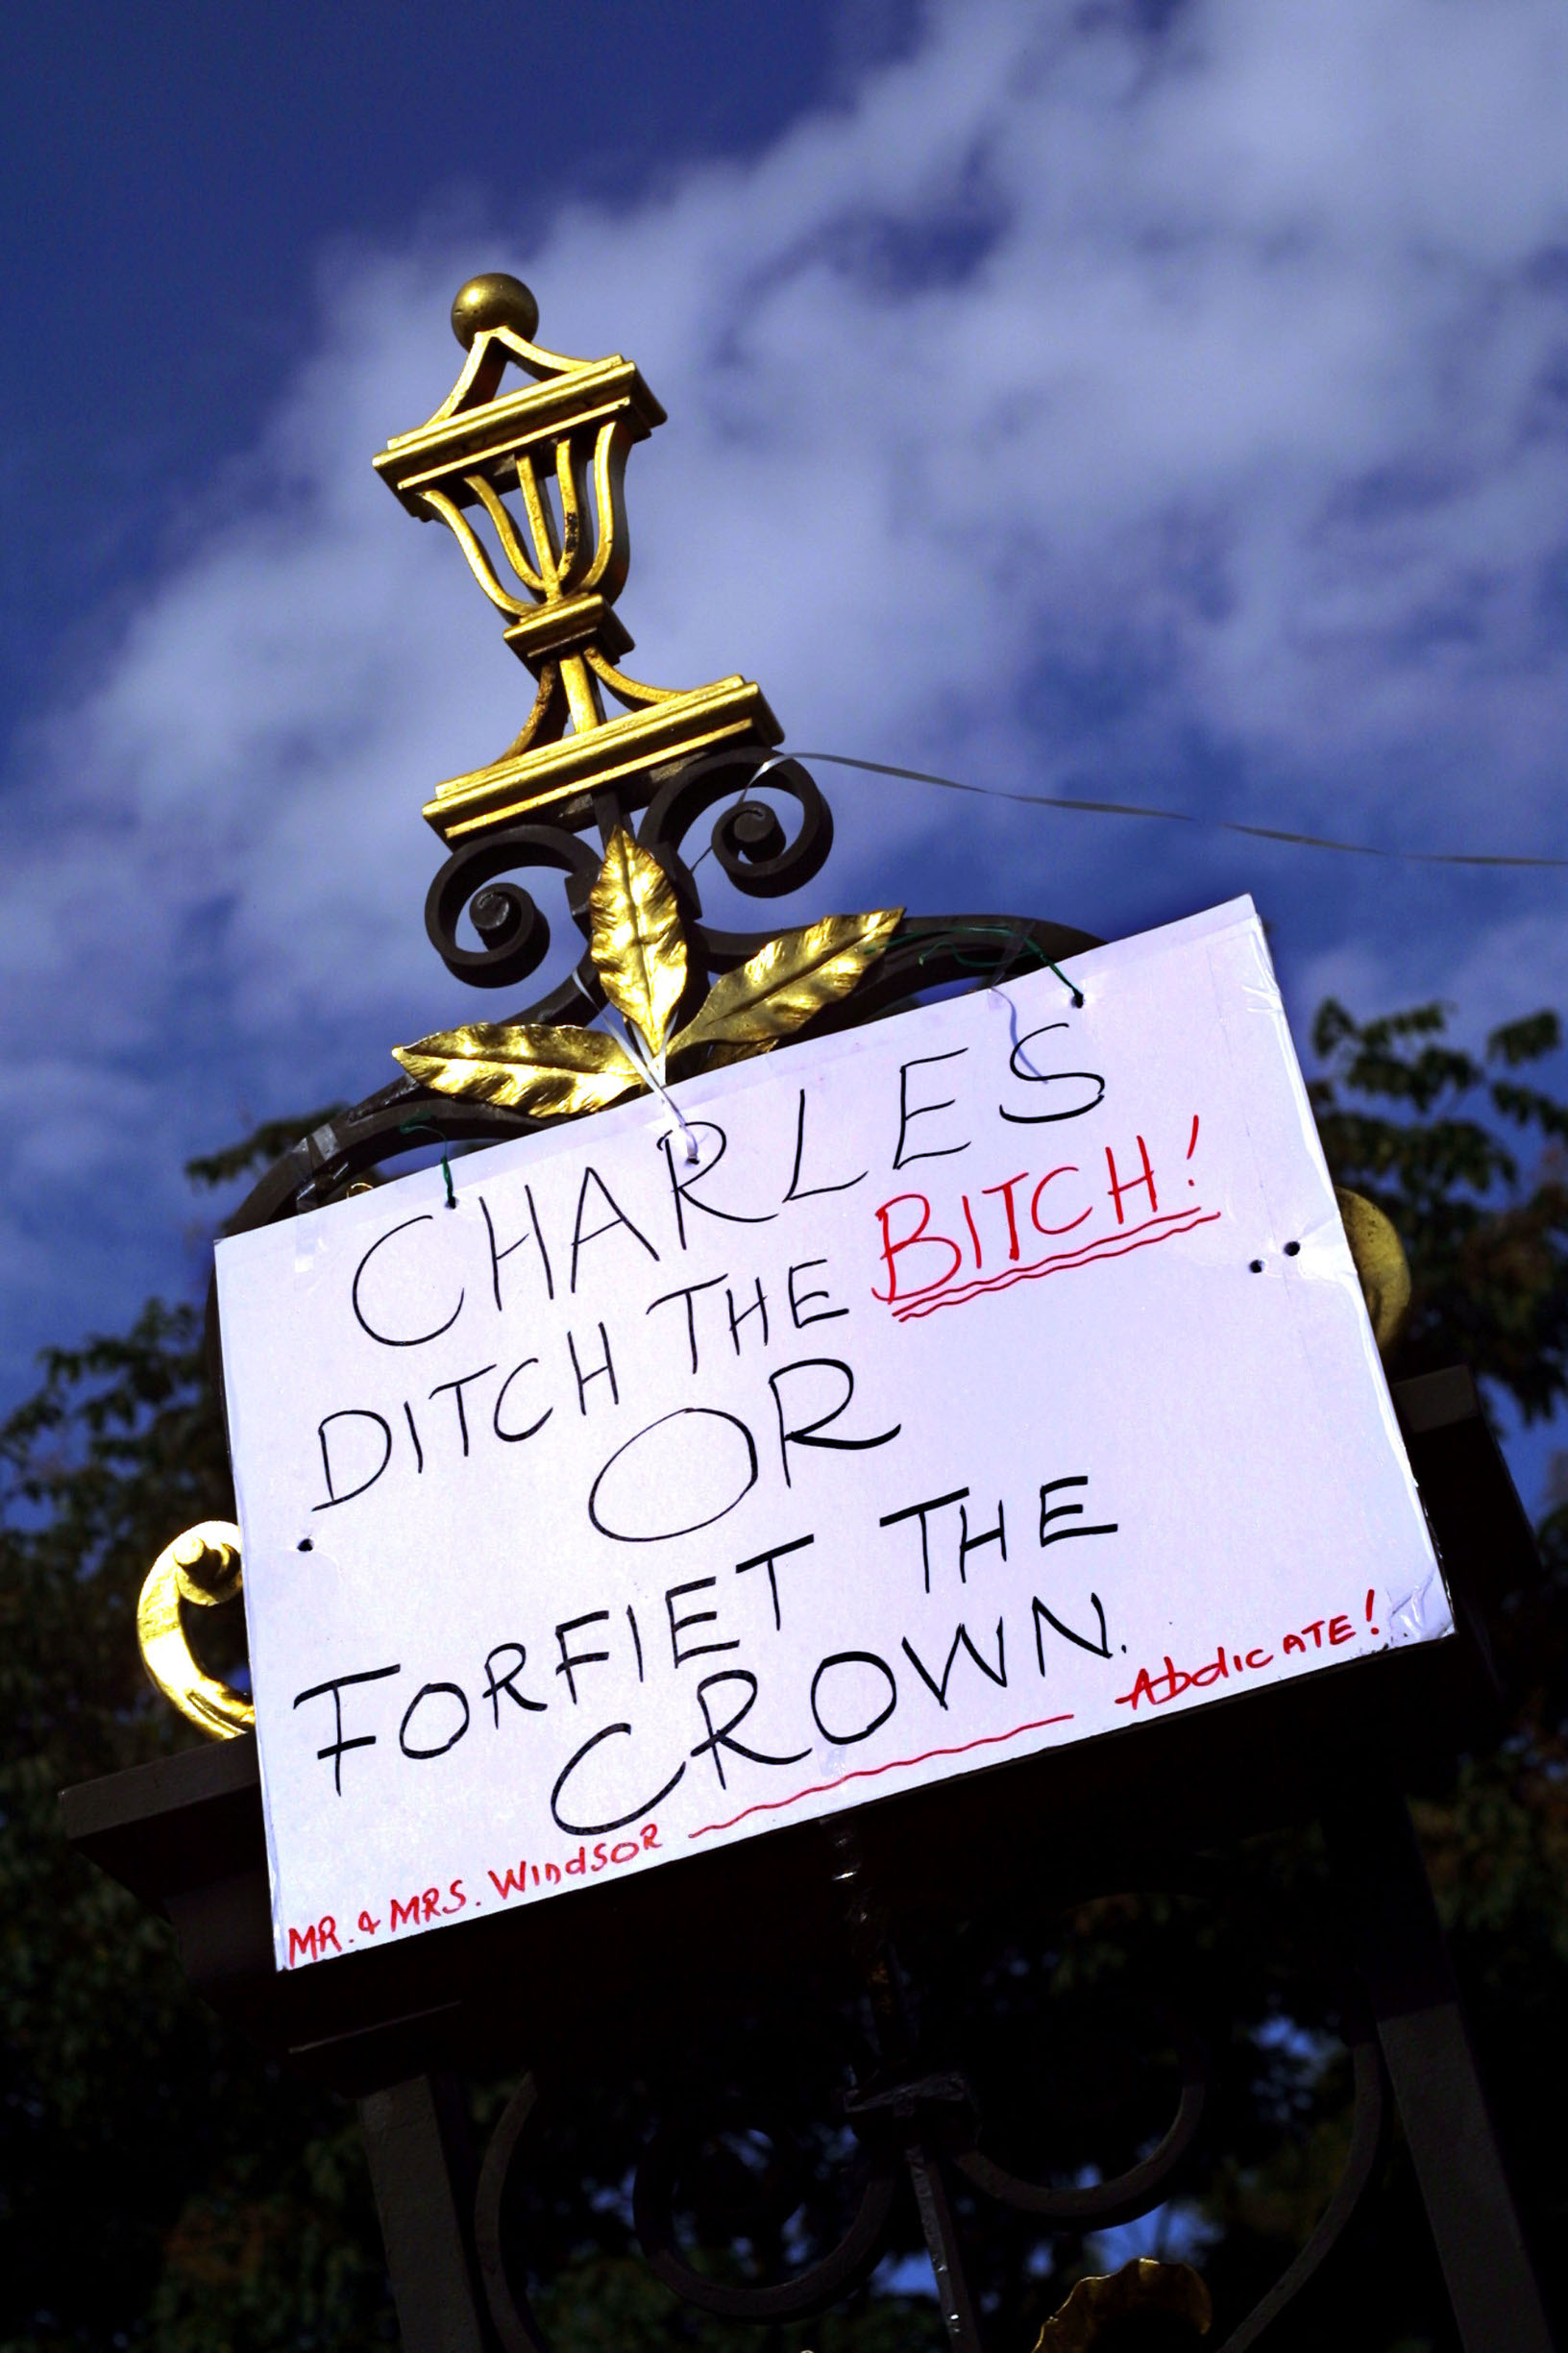 393903 07: A sign calling for Prince Charles to end his relationship with Camilla Parker-Bowles hangs at the gates of Kensington Palace on the 4th anniversary of the death of Diana, Princess of Wales, August 31, 2001 in London, United Kingdom. (Photo by Sion Touhig/Getty Images)